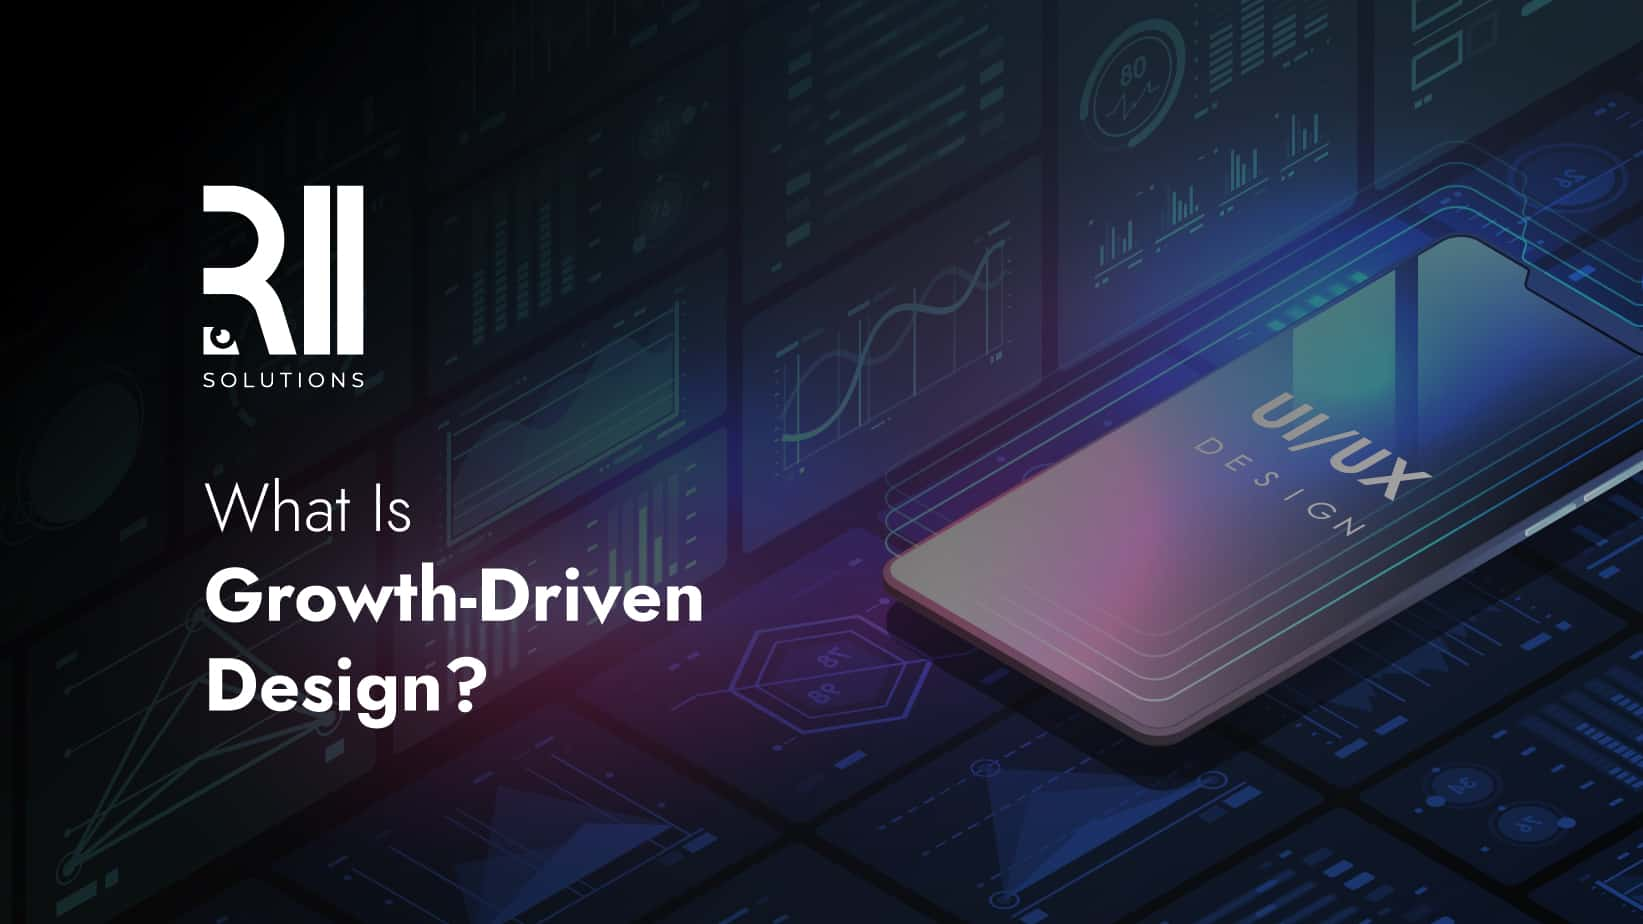 What Is Growth-Driven Design?